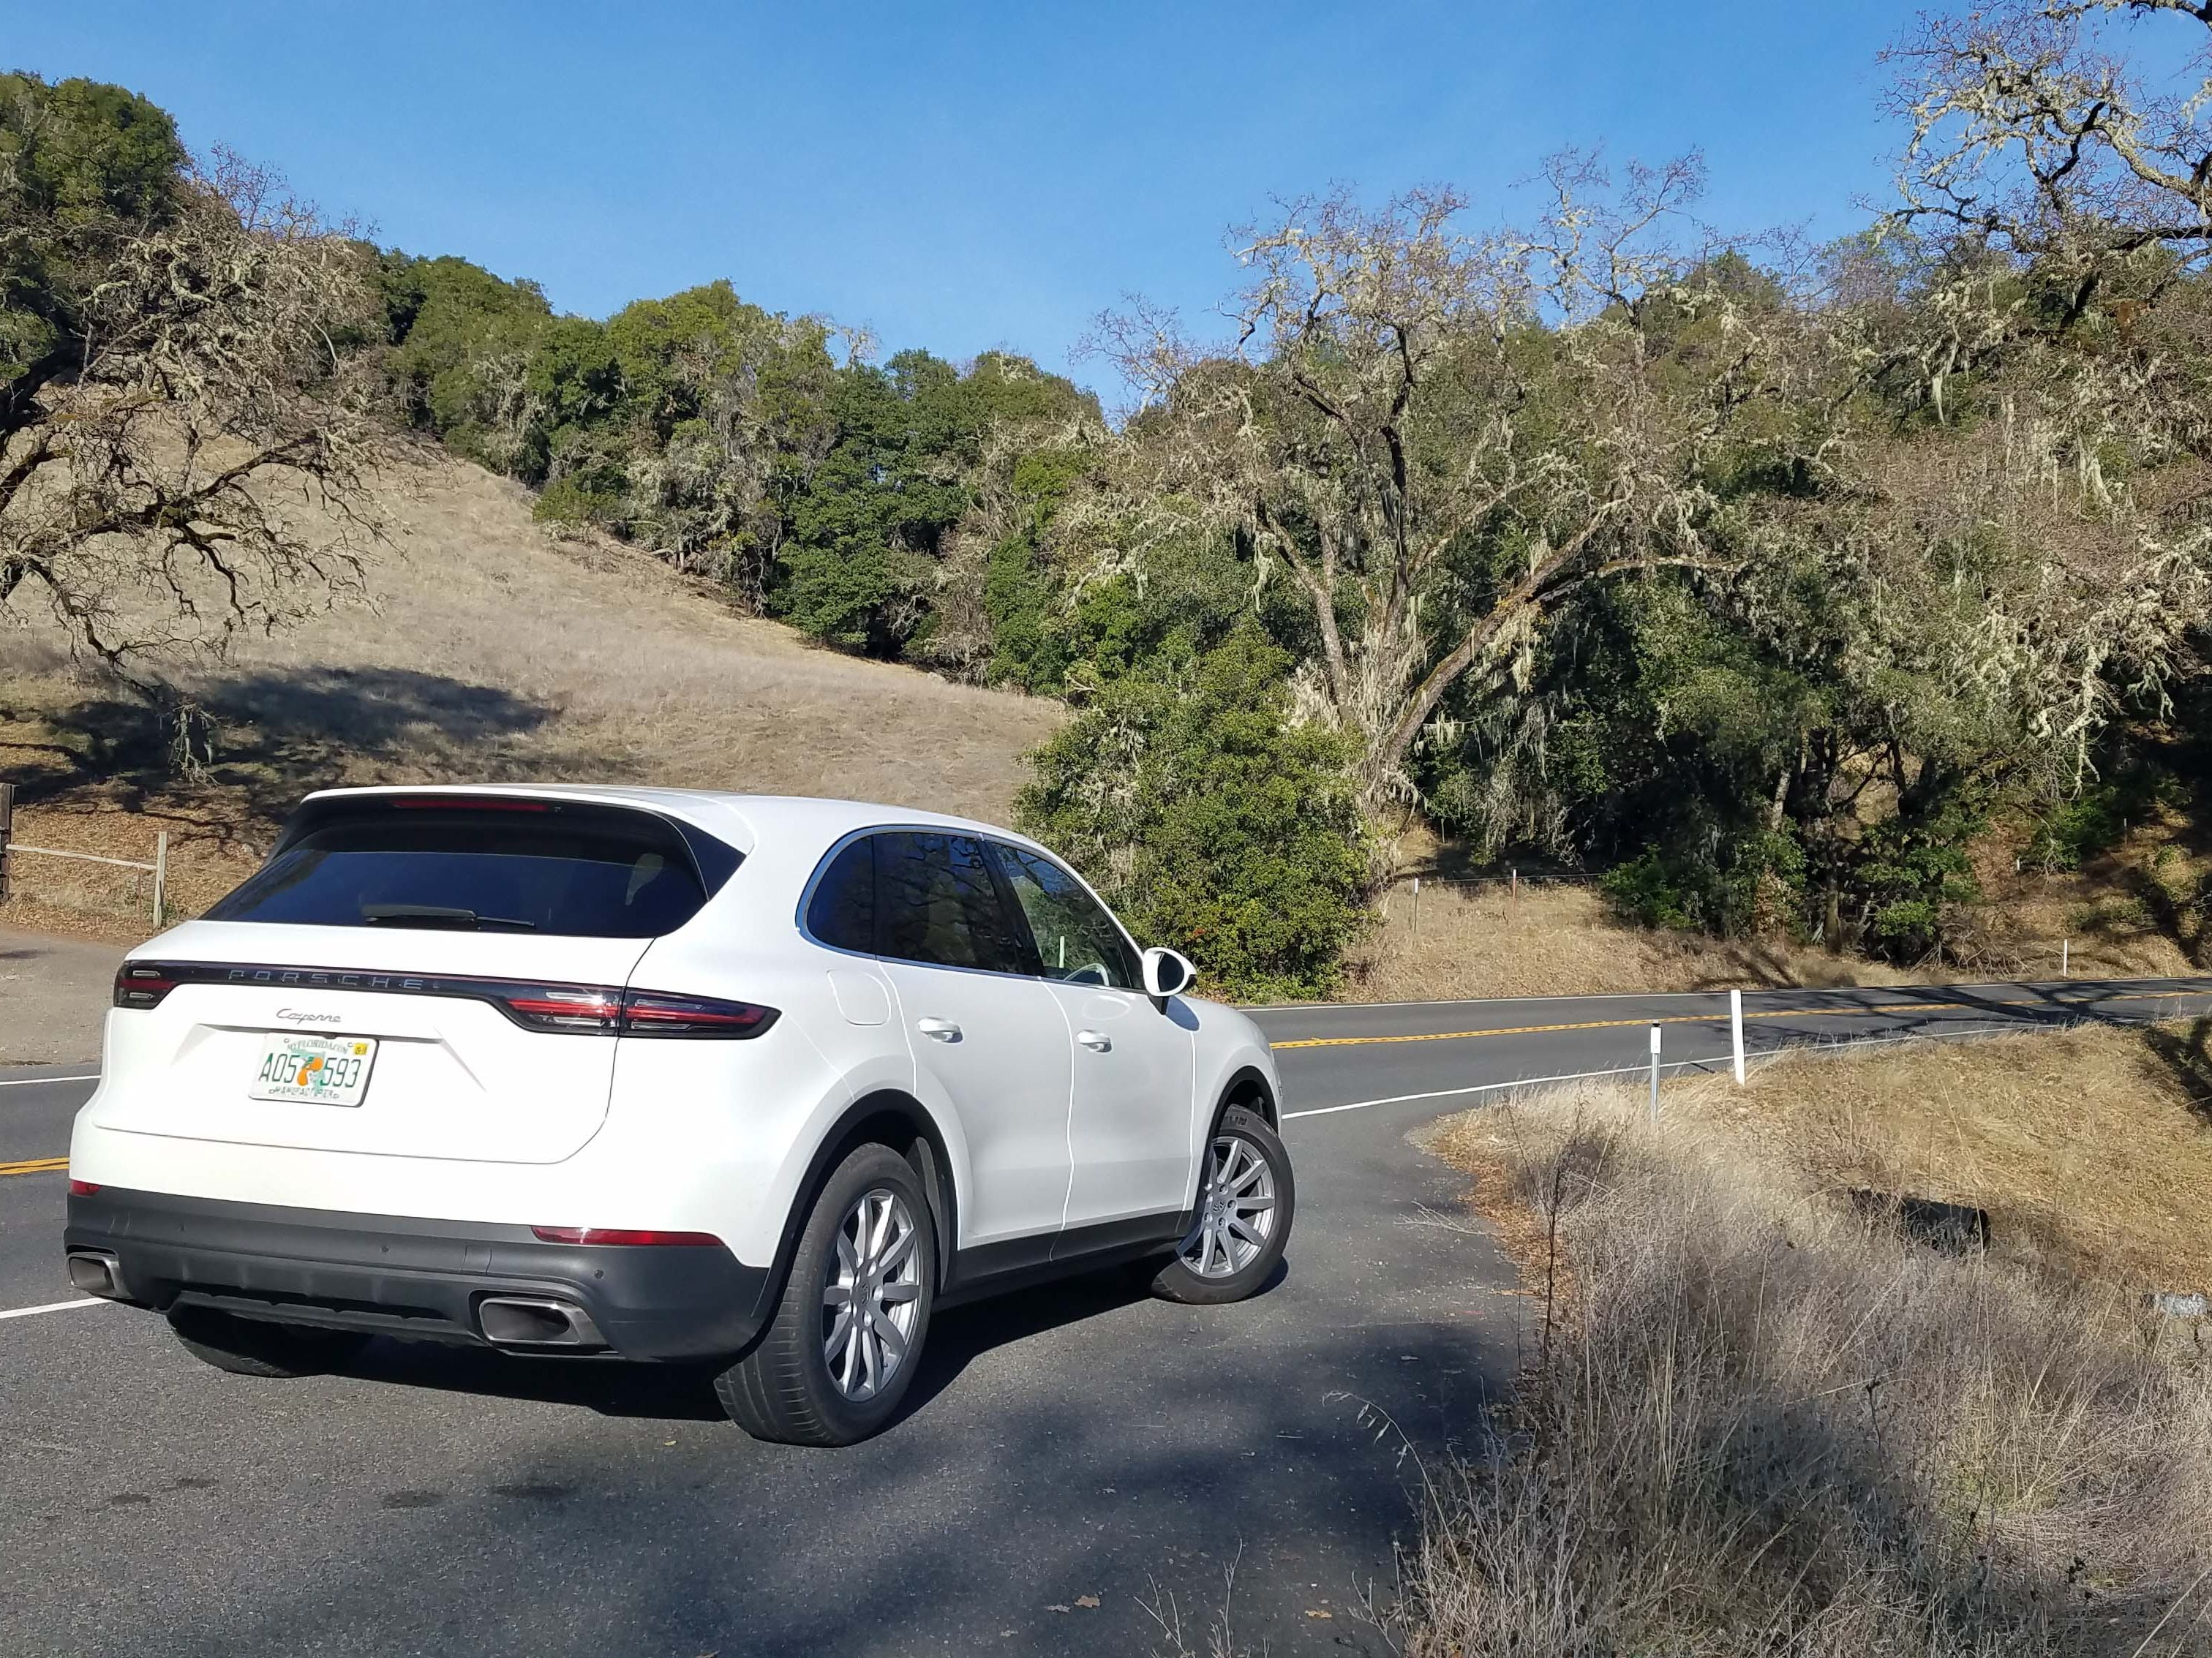 Through Napa Valley's twisted roads, the 2019 Cayenne was a barrel of fun. Precise handling and 335 horsepower keep things moving along.